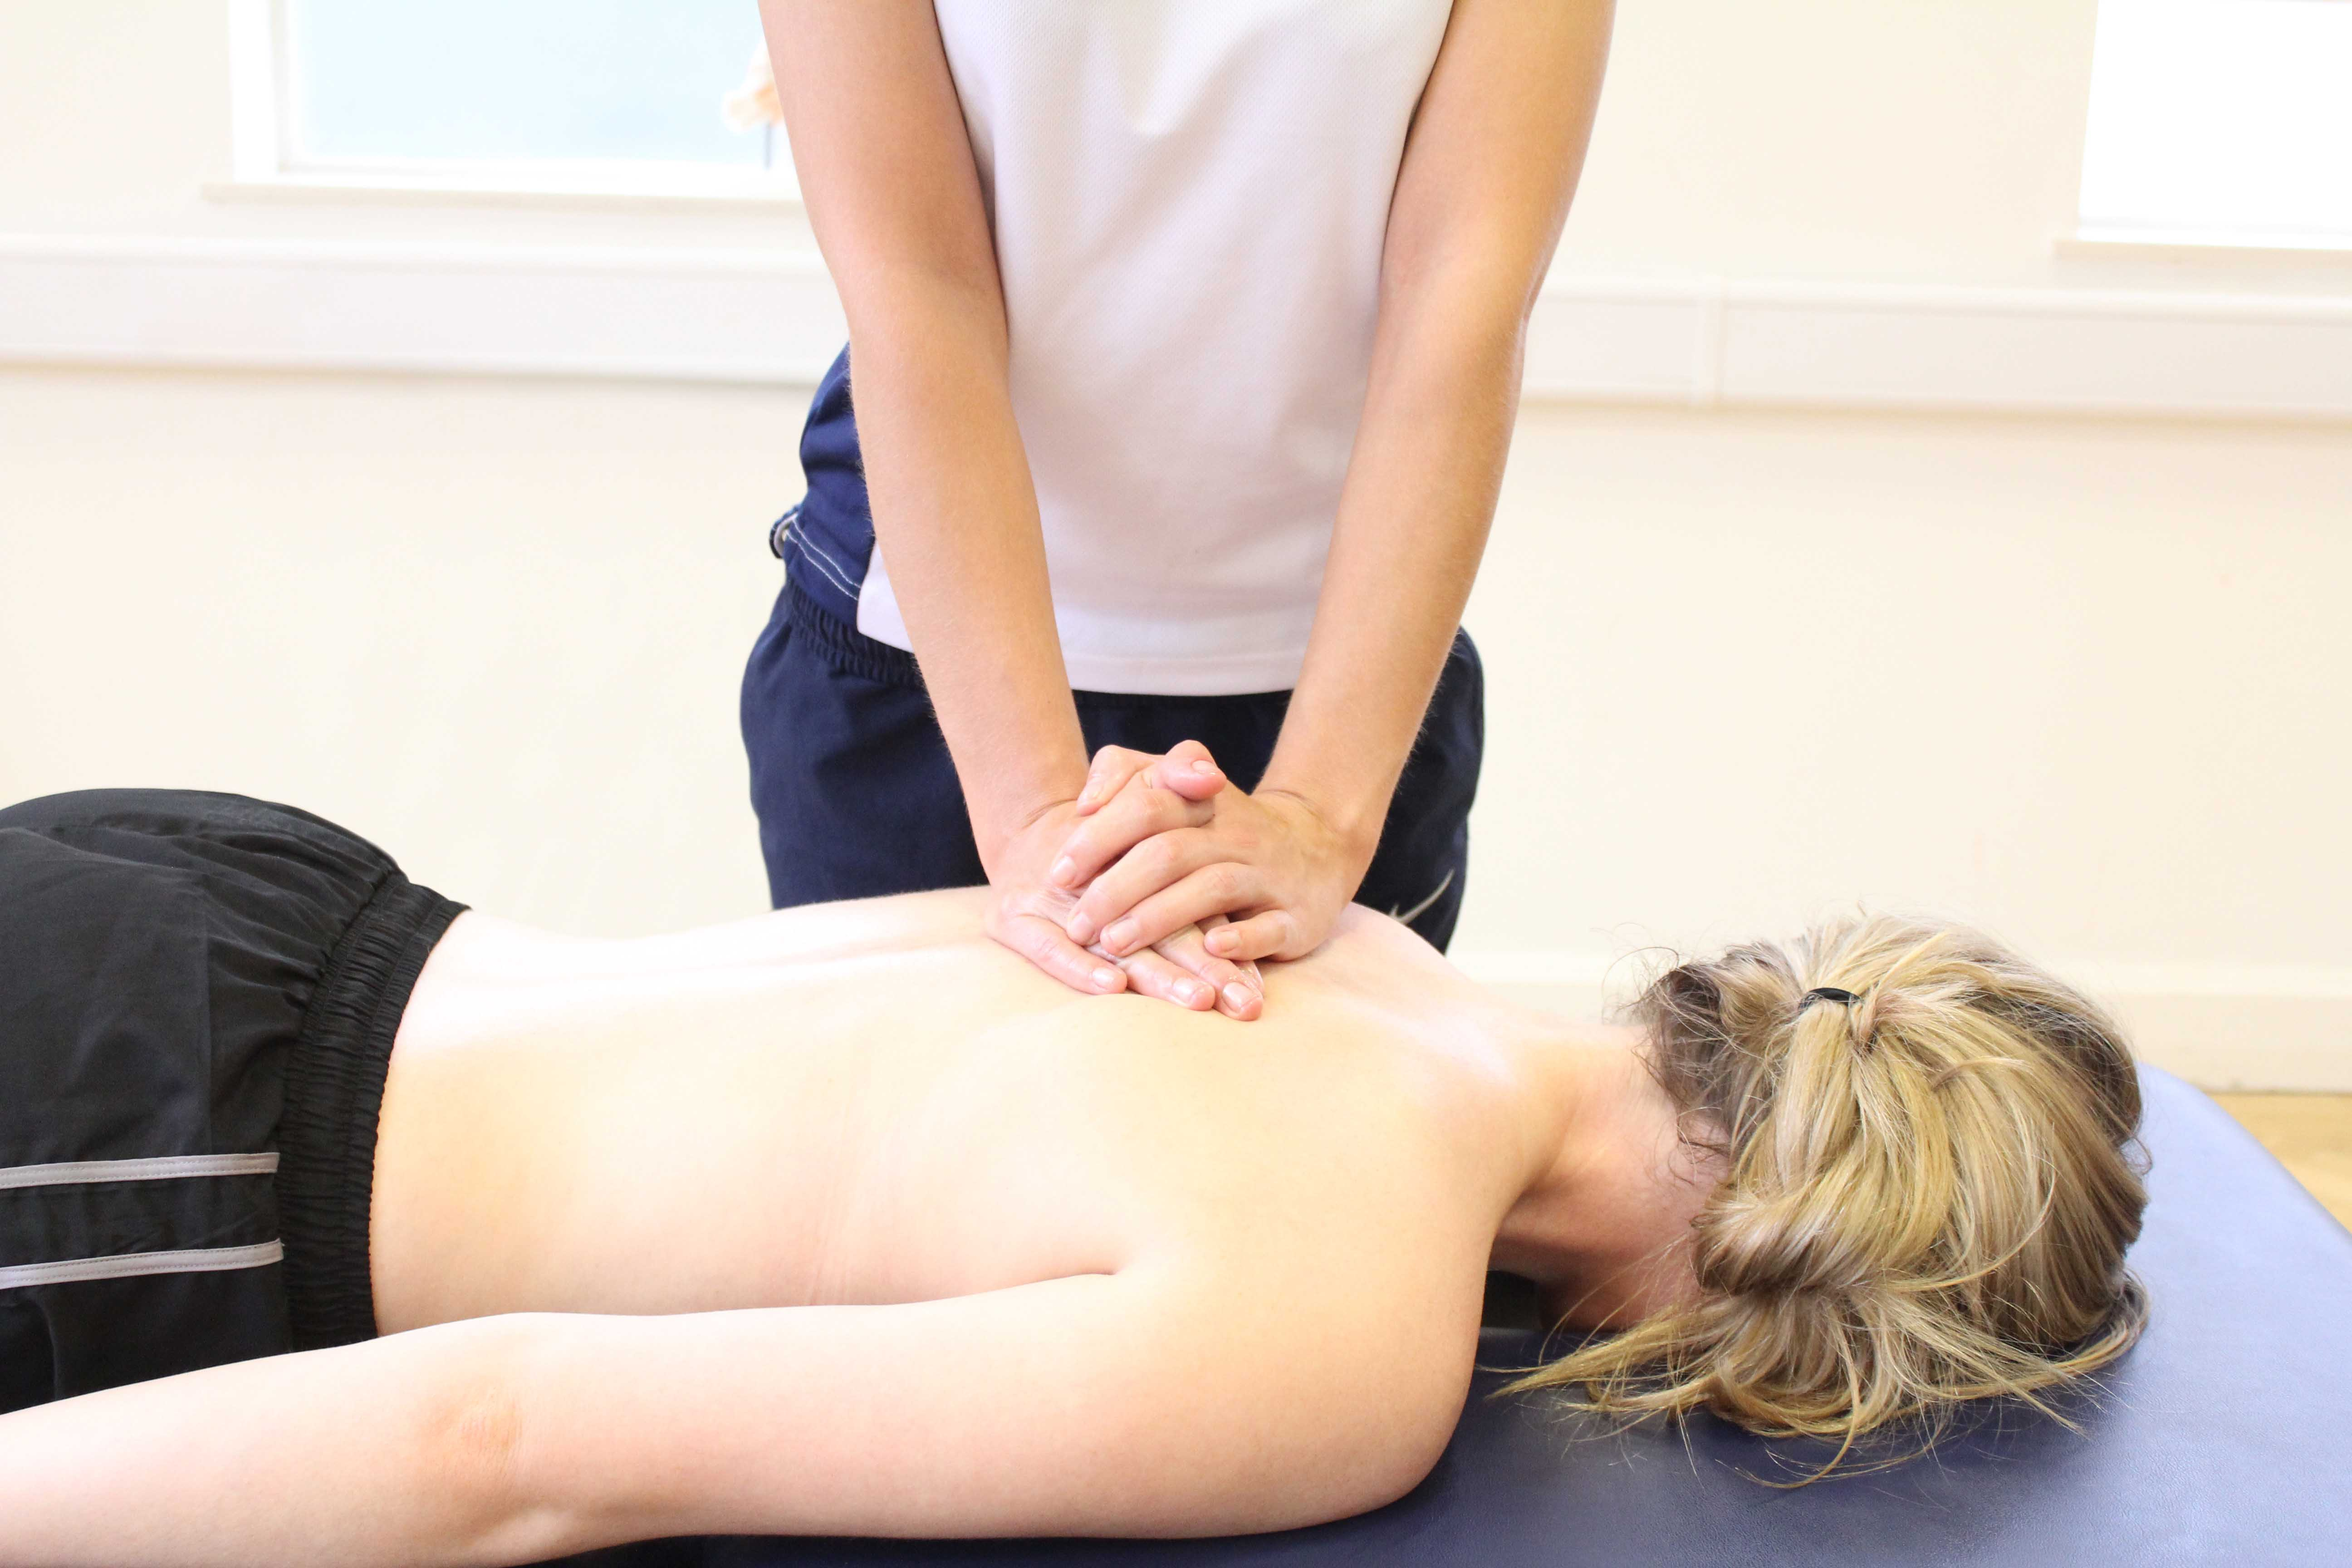 Mobilisations of the thoracic spine by an experienced physiotherapist